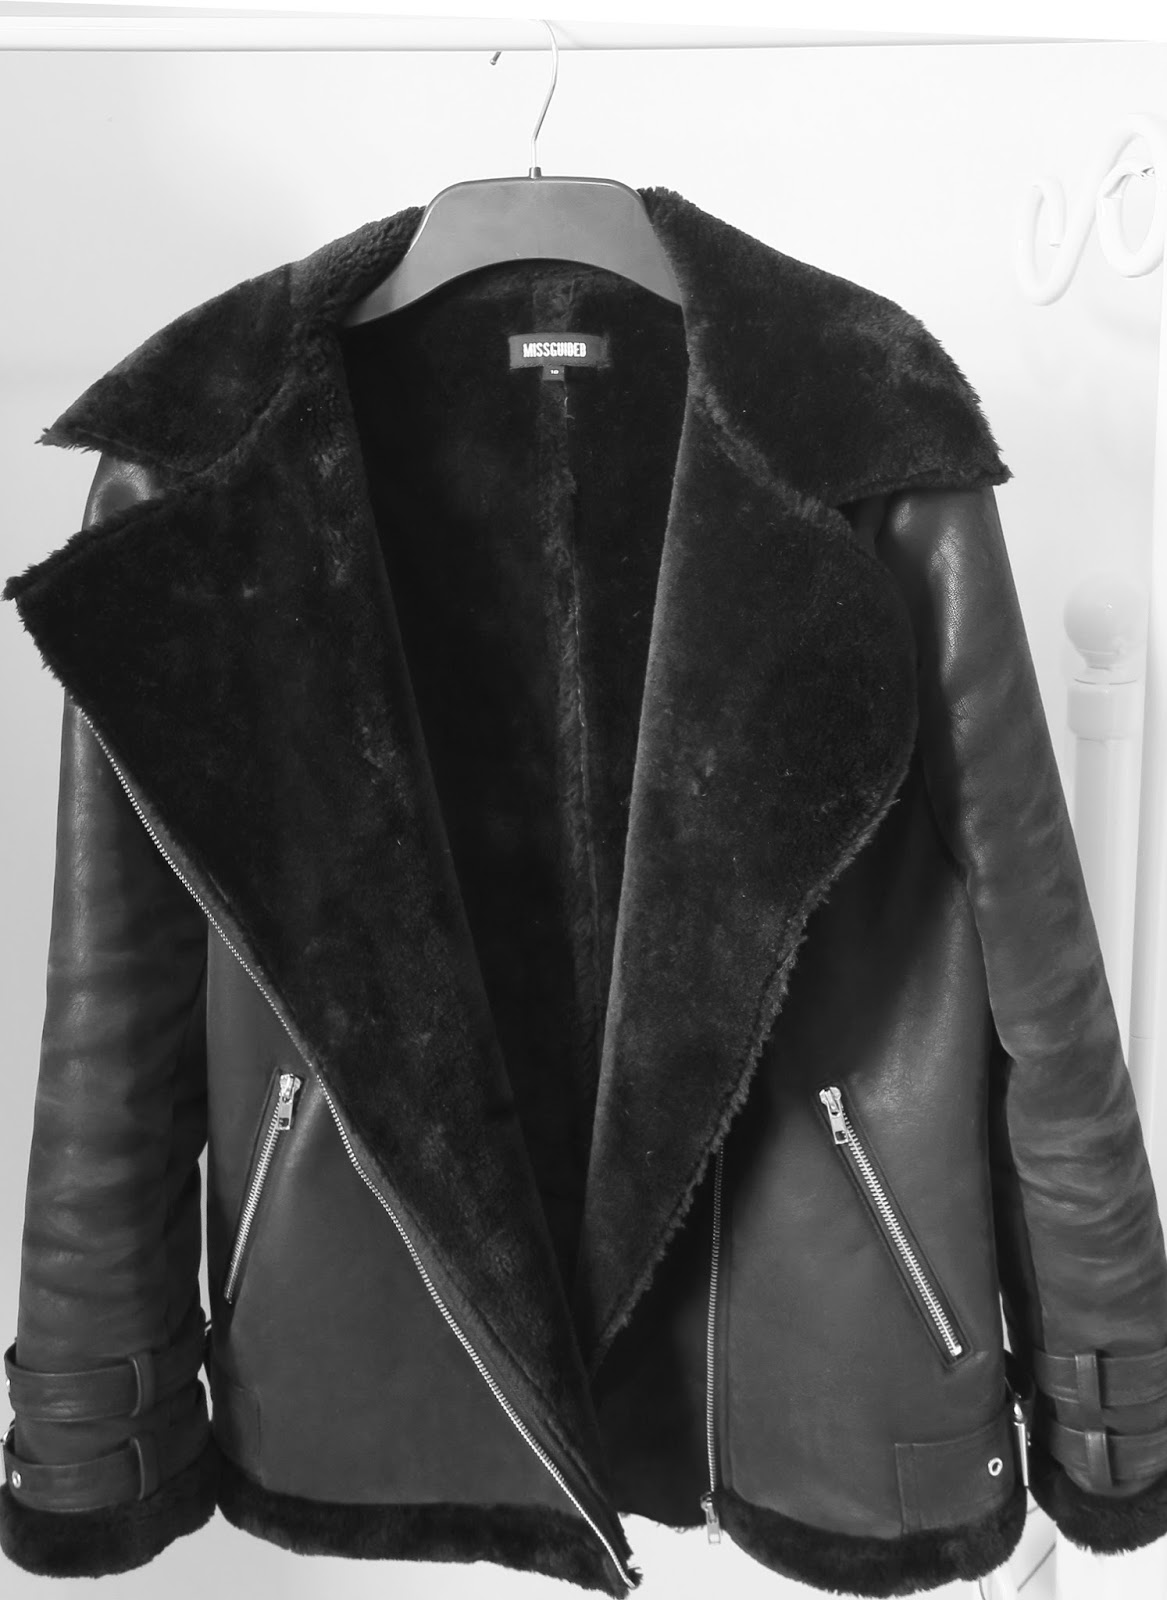 acne style shearling jacket